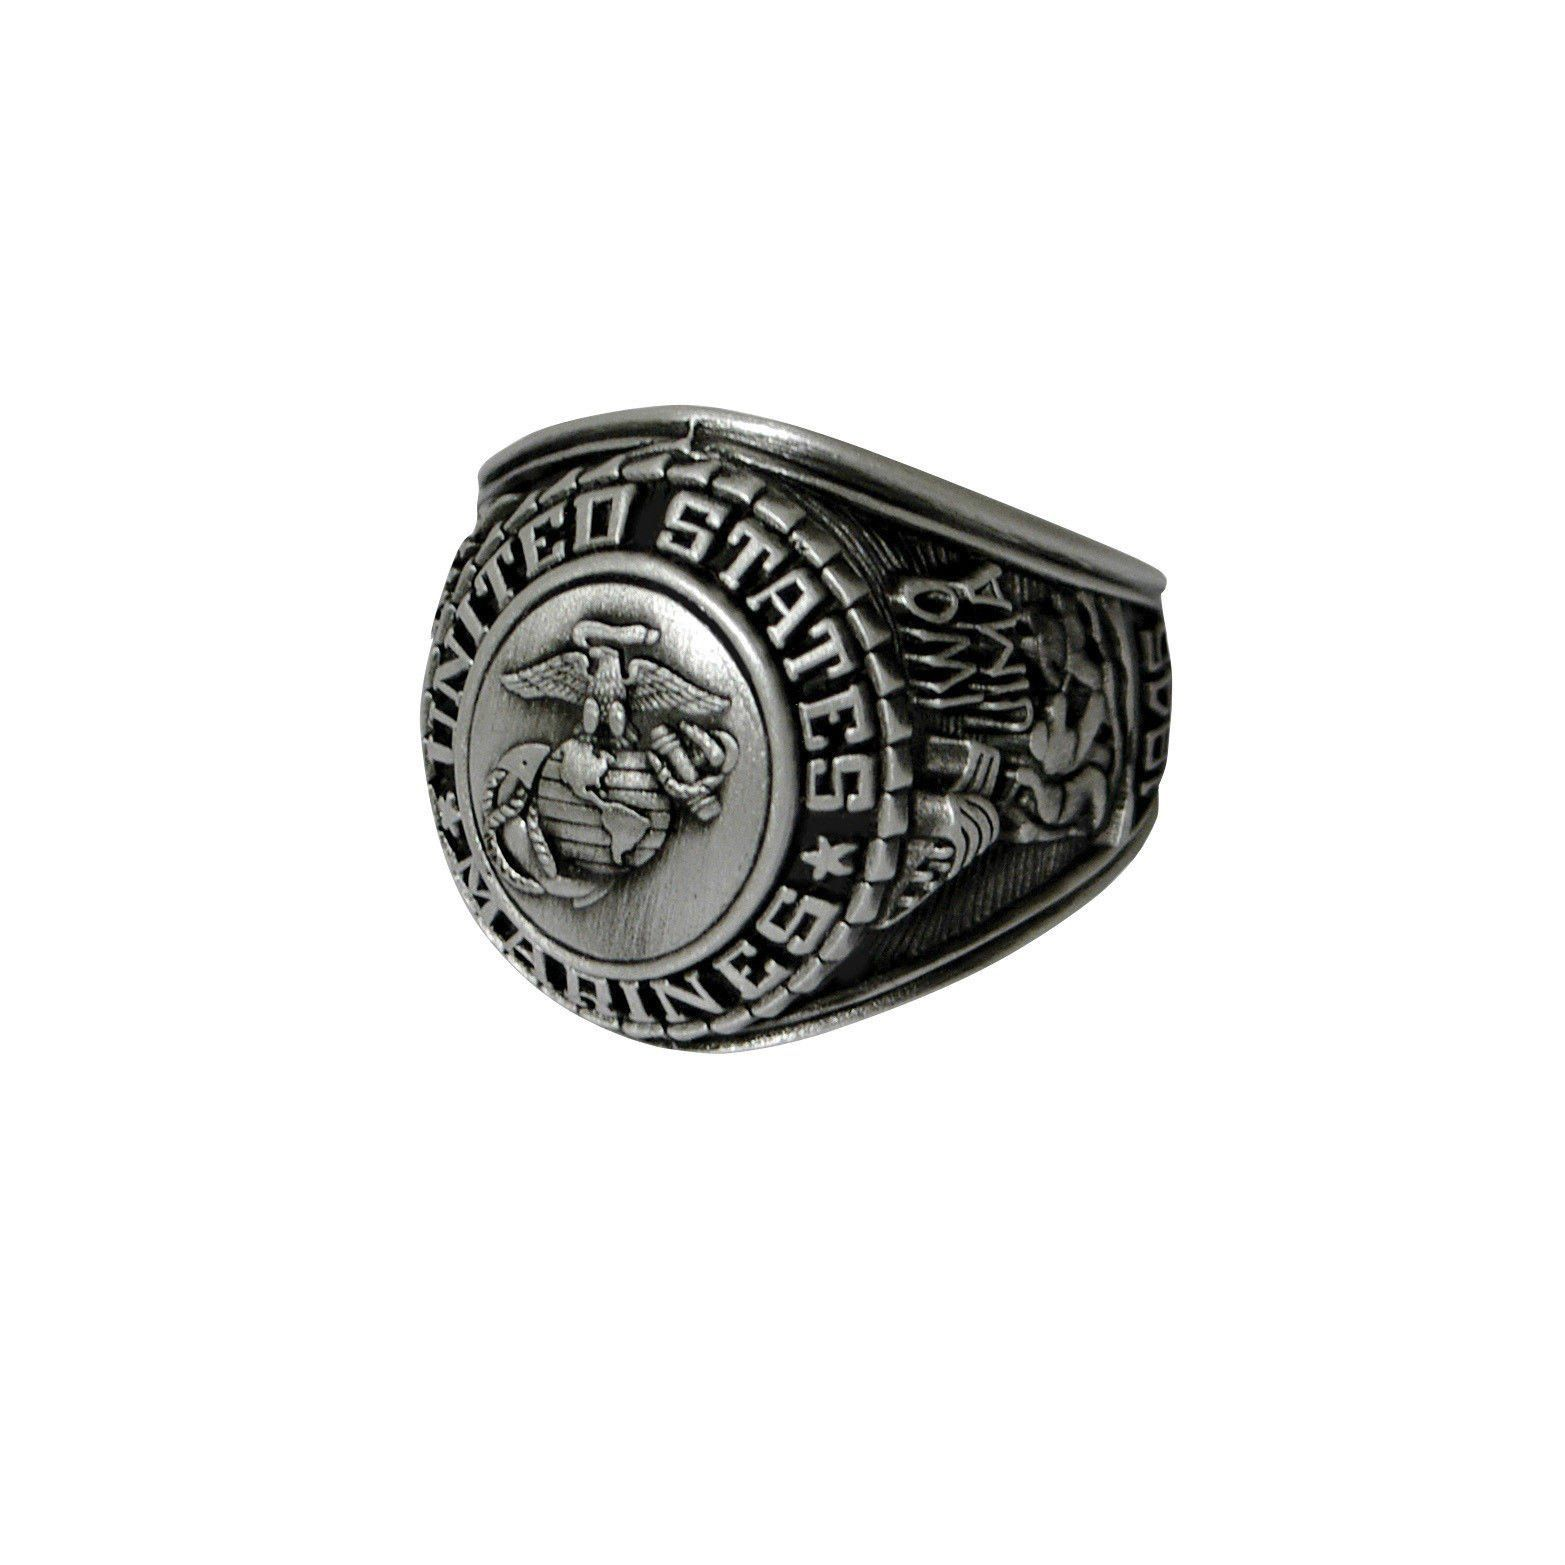 Deluxe Military Rings Army Navy Sp Forces Marines Usmc U S Made Usmc Marine Corps Rings Marines